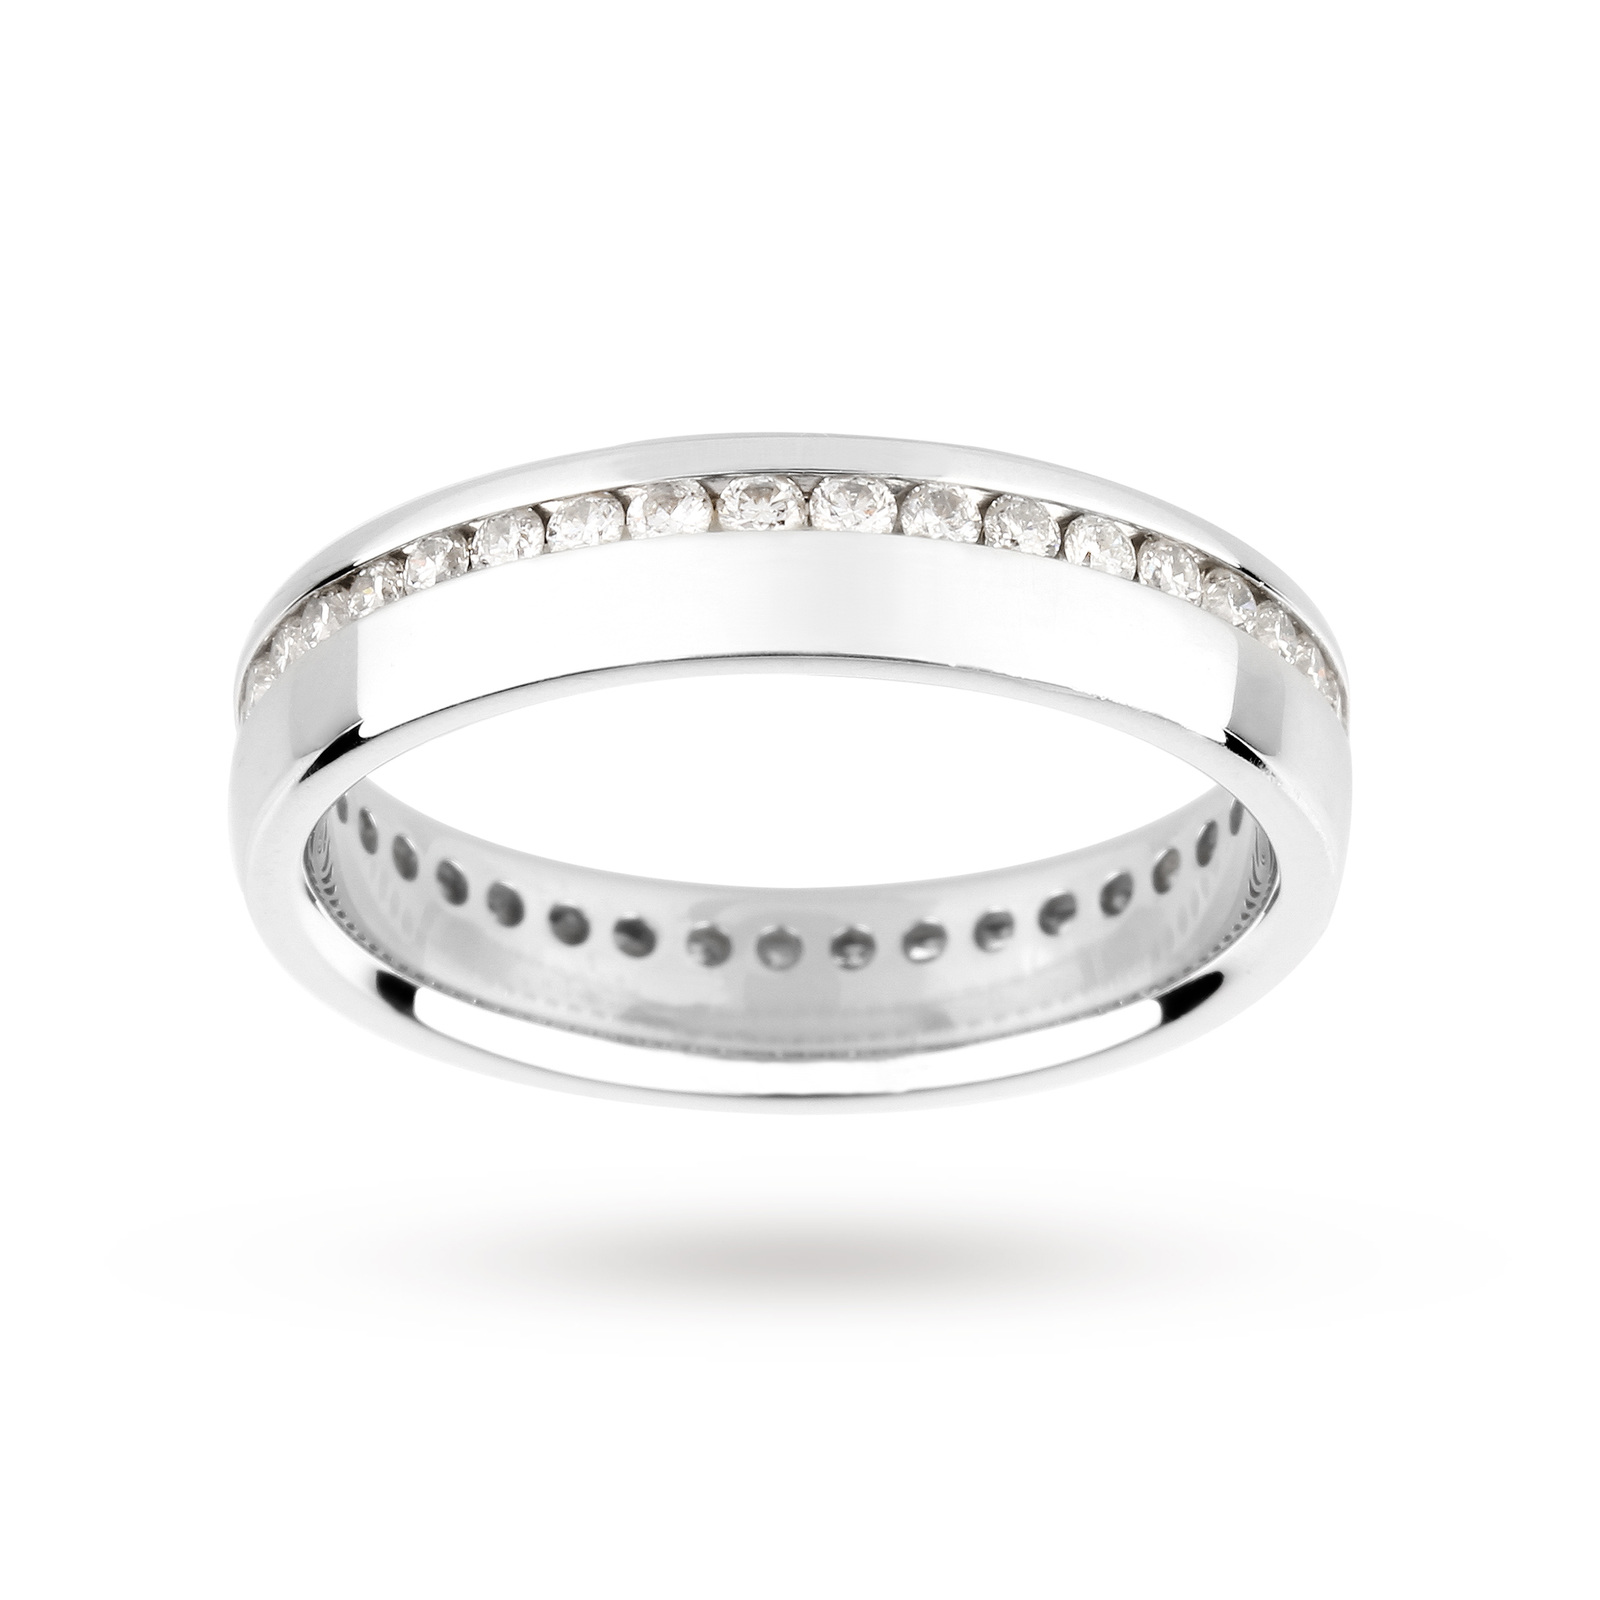 Platinum 0.50 Carat Full Diamond Set Wedding Ring